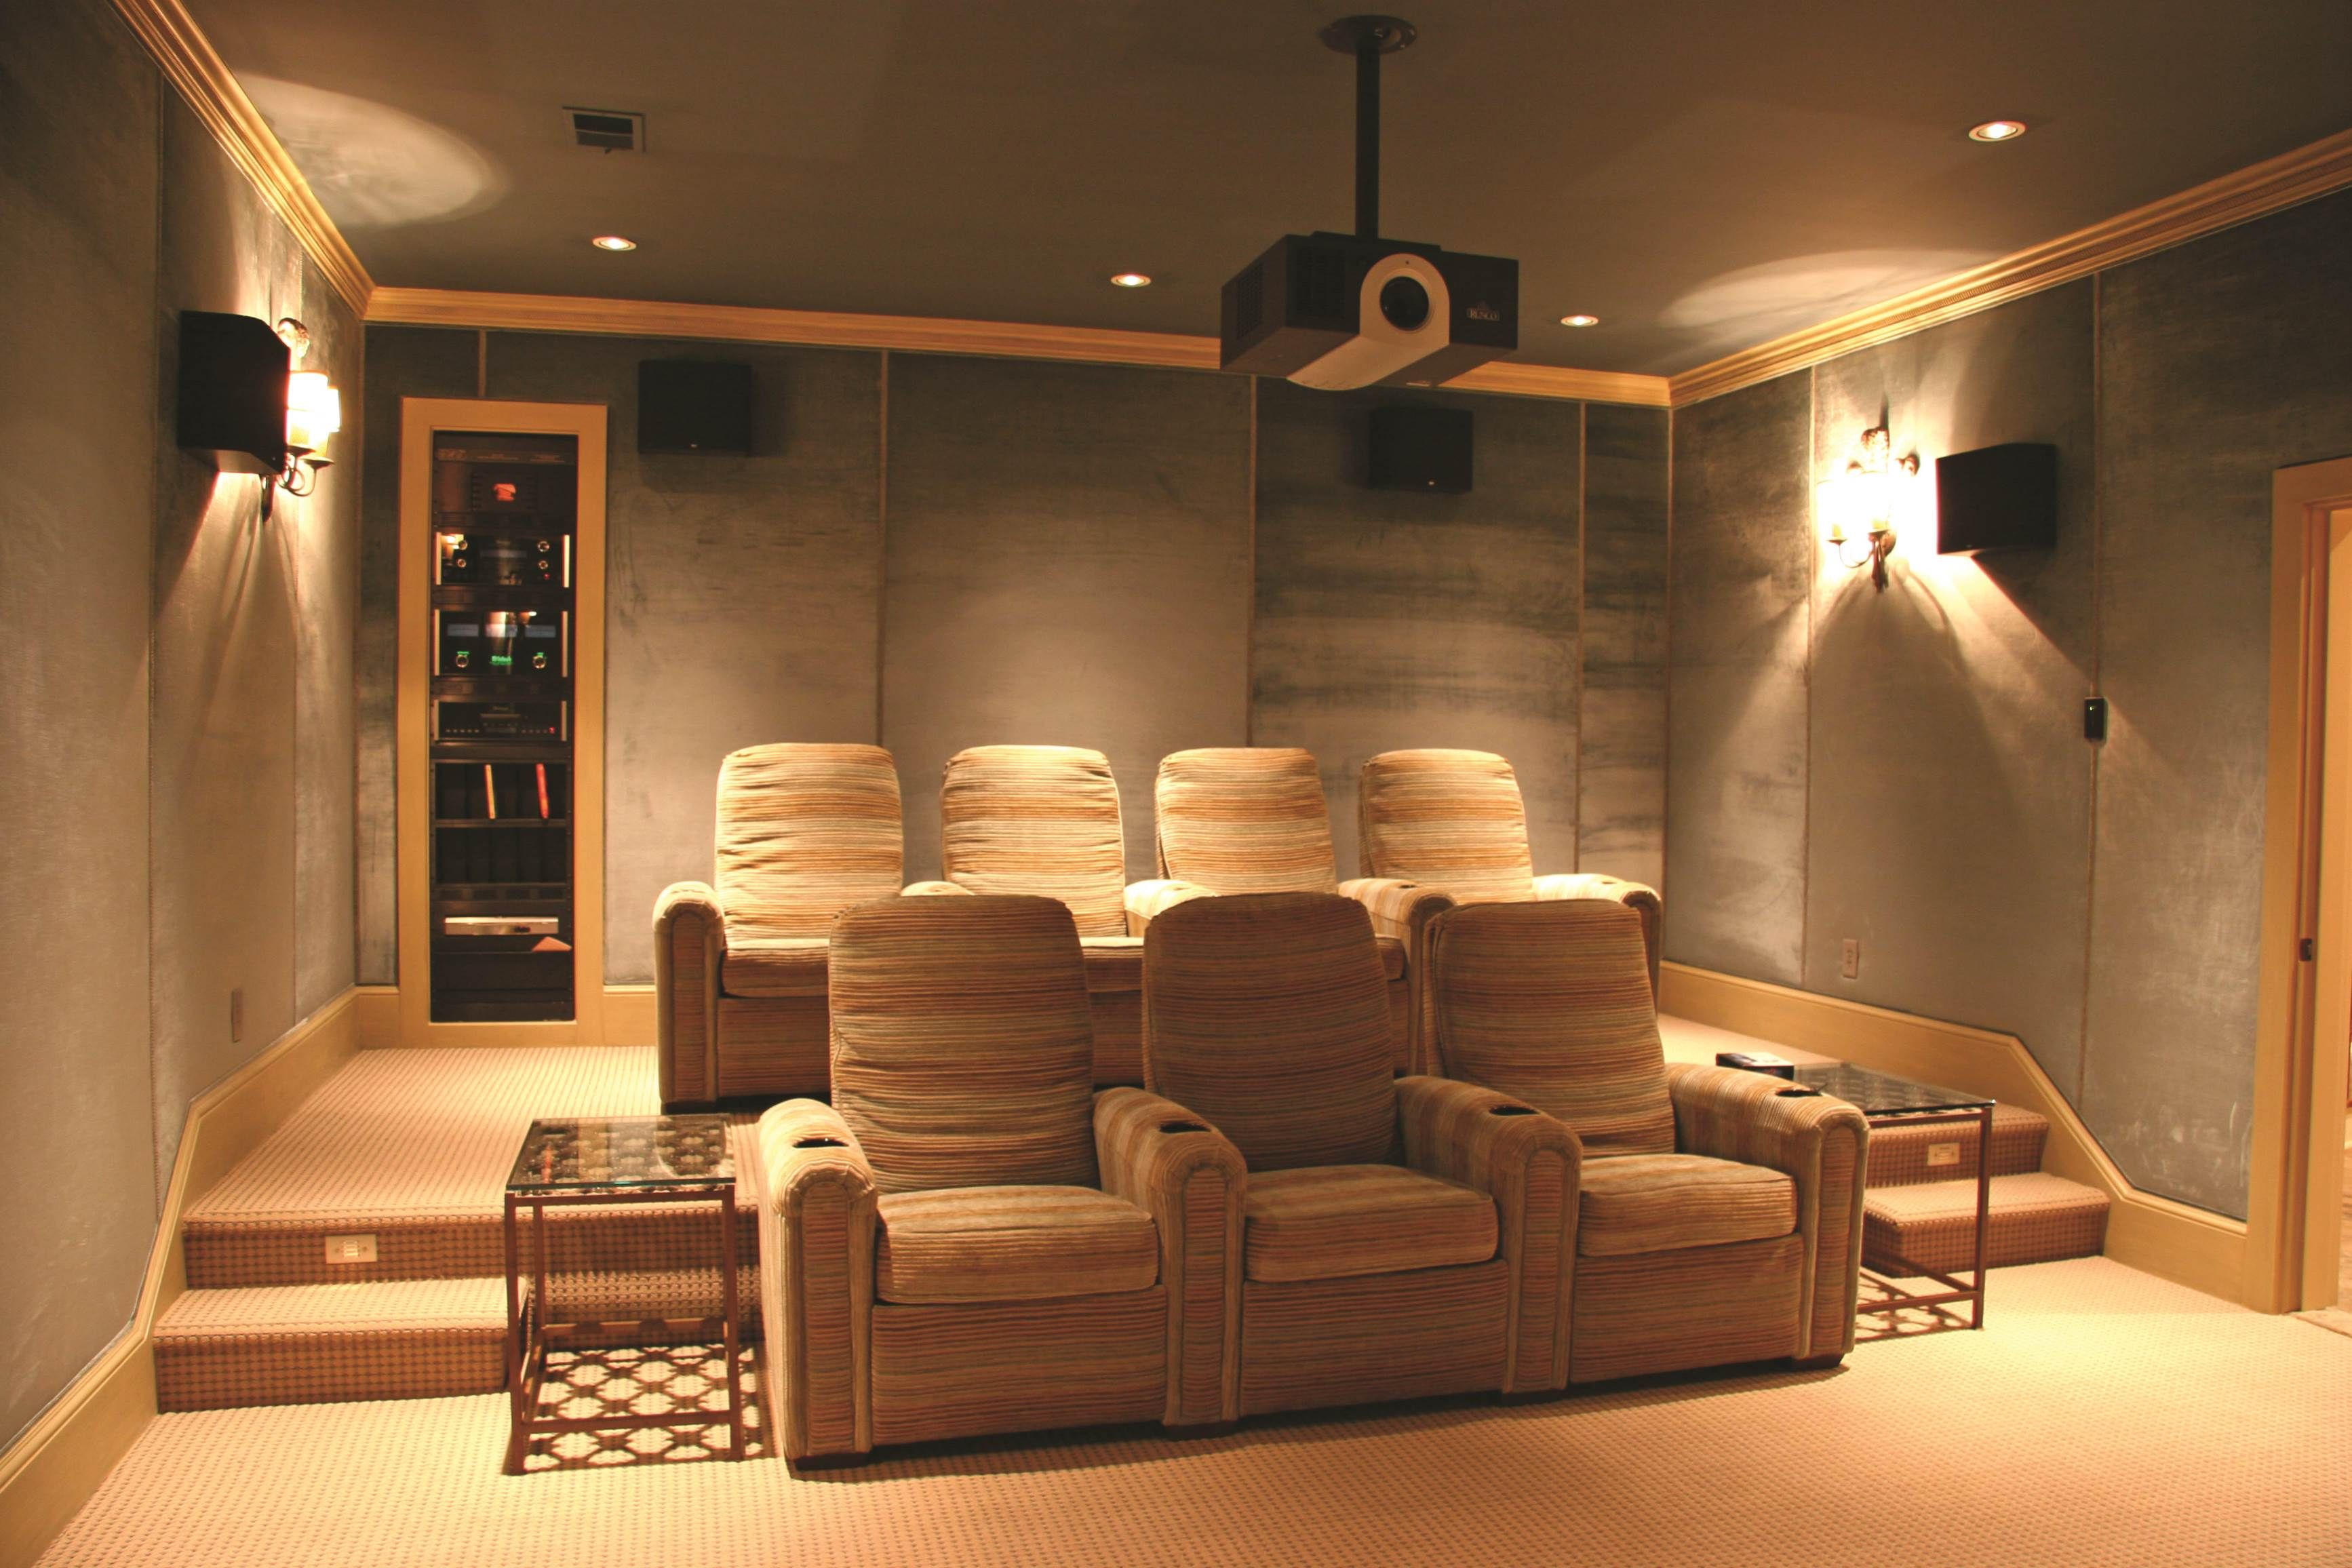 Gentil These 25 Jaw Dropping Home Theater Designs Will Have You Redesigning Your  Basement After You See The Elegance And Luxury Of These Home Theateru0027s!